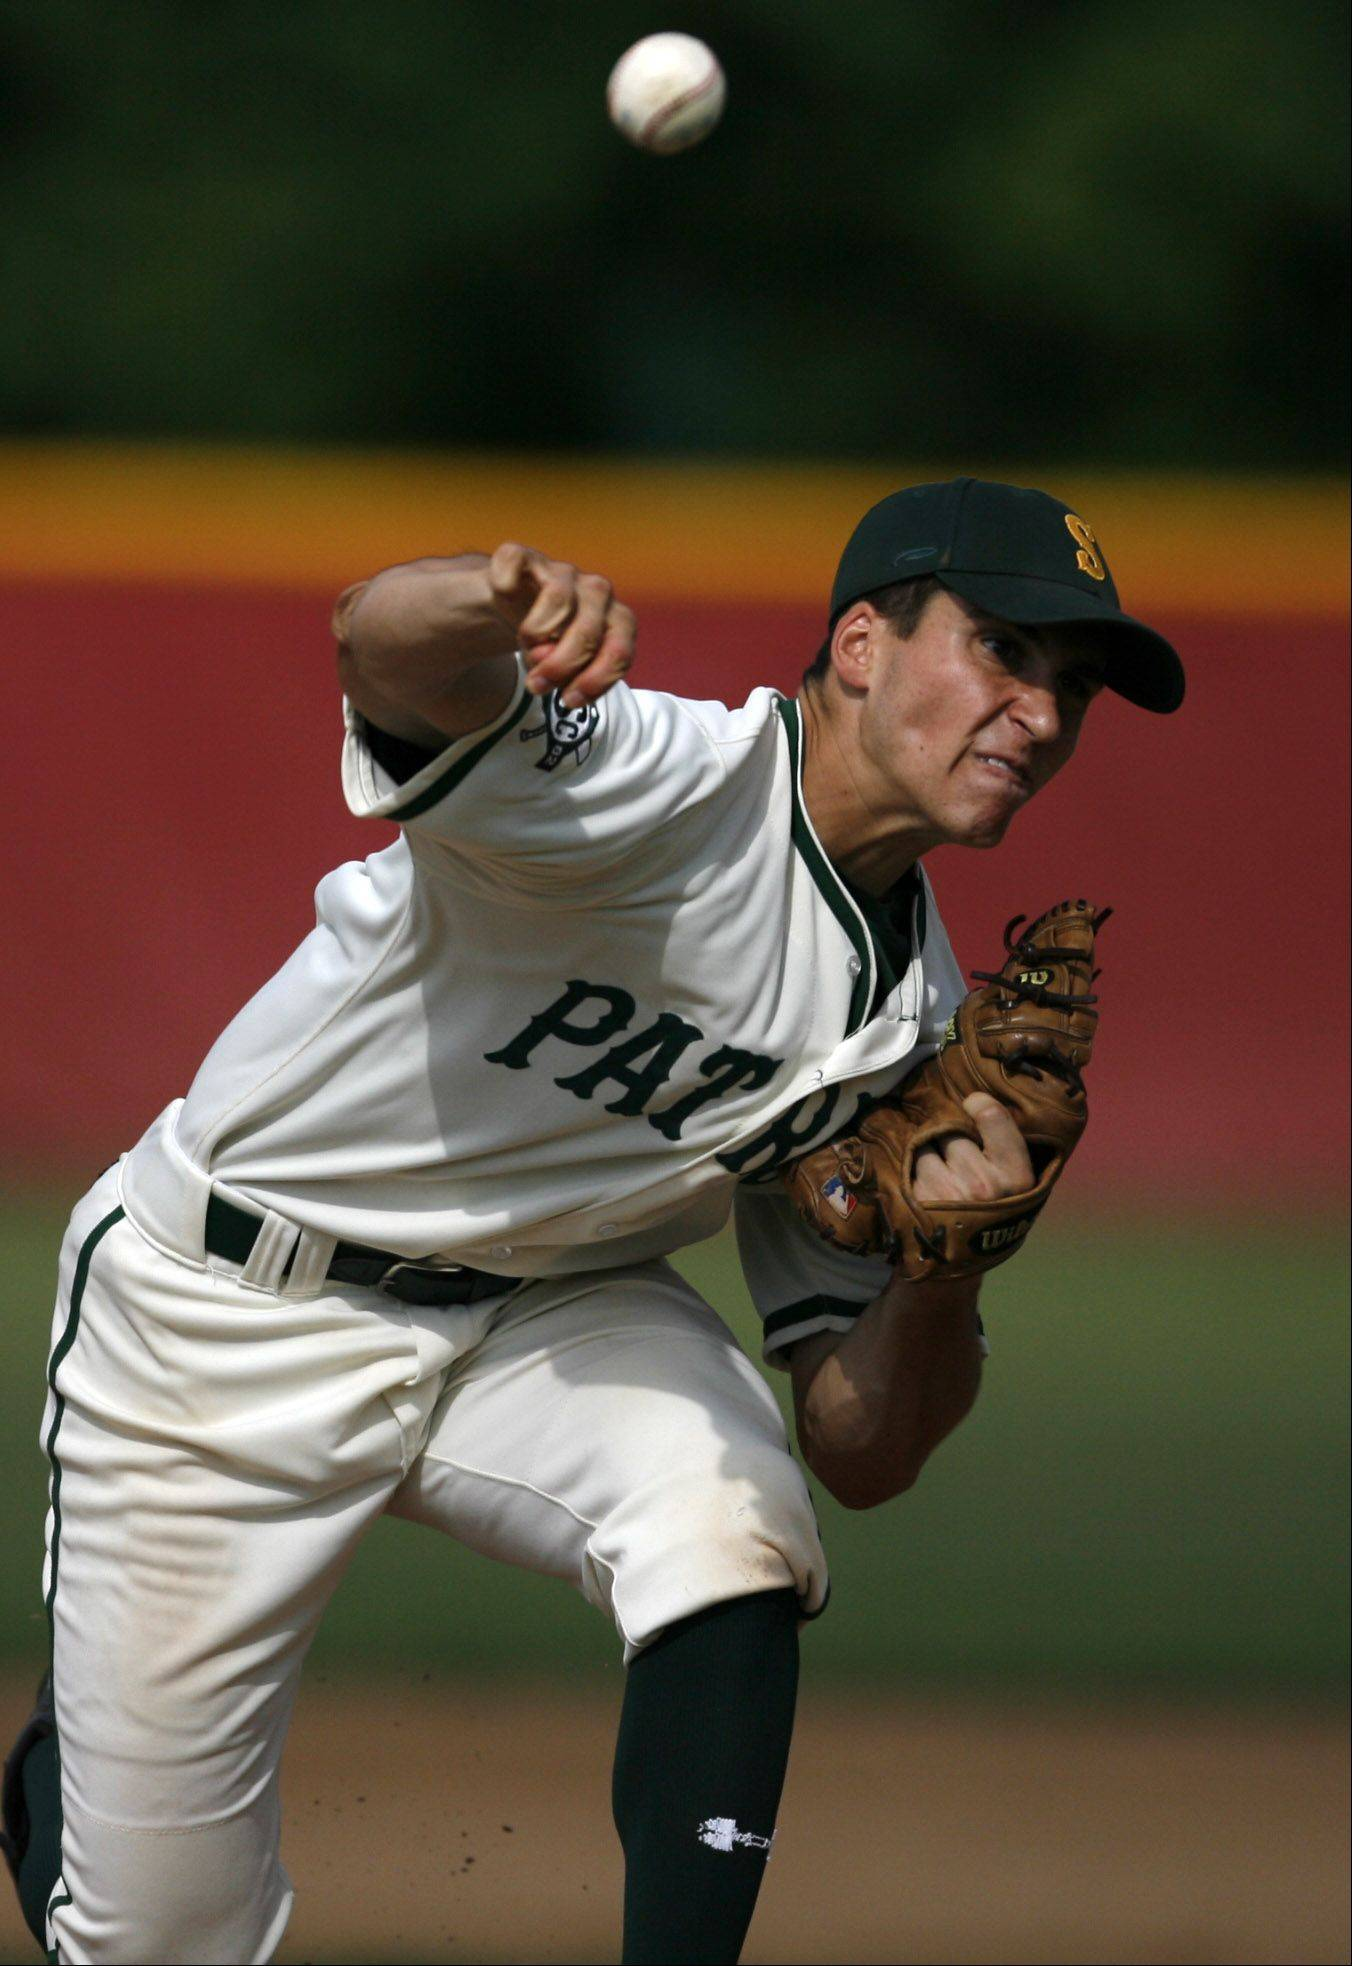 Kyle Ruchim, shown here pitching for Stevenson, was named to the All-Big Ten third team as a junior playing outfield for Northwestern.